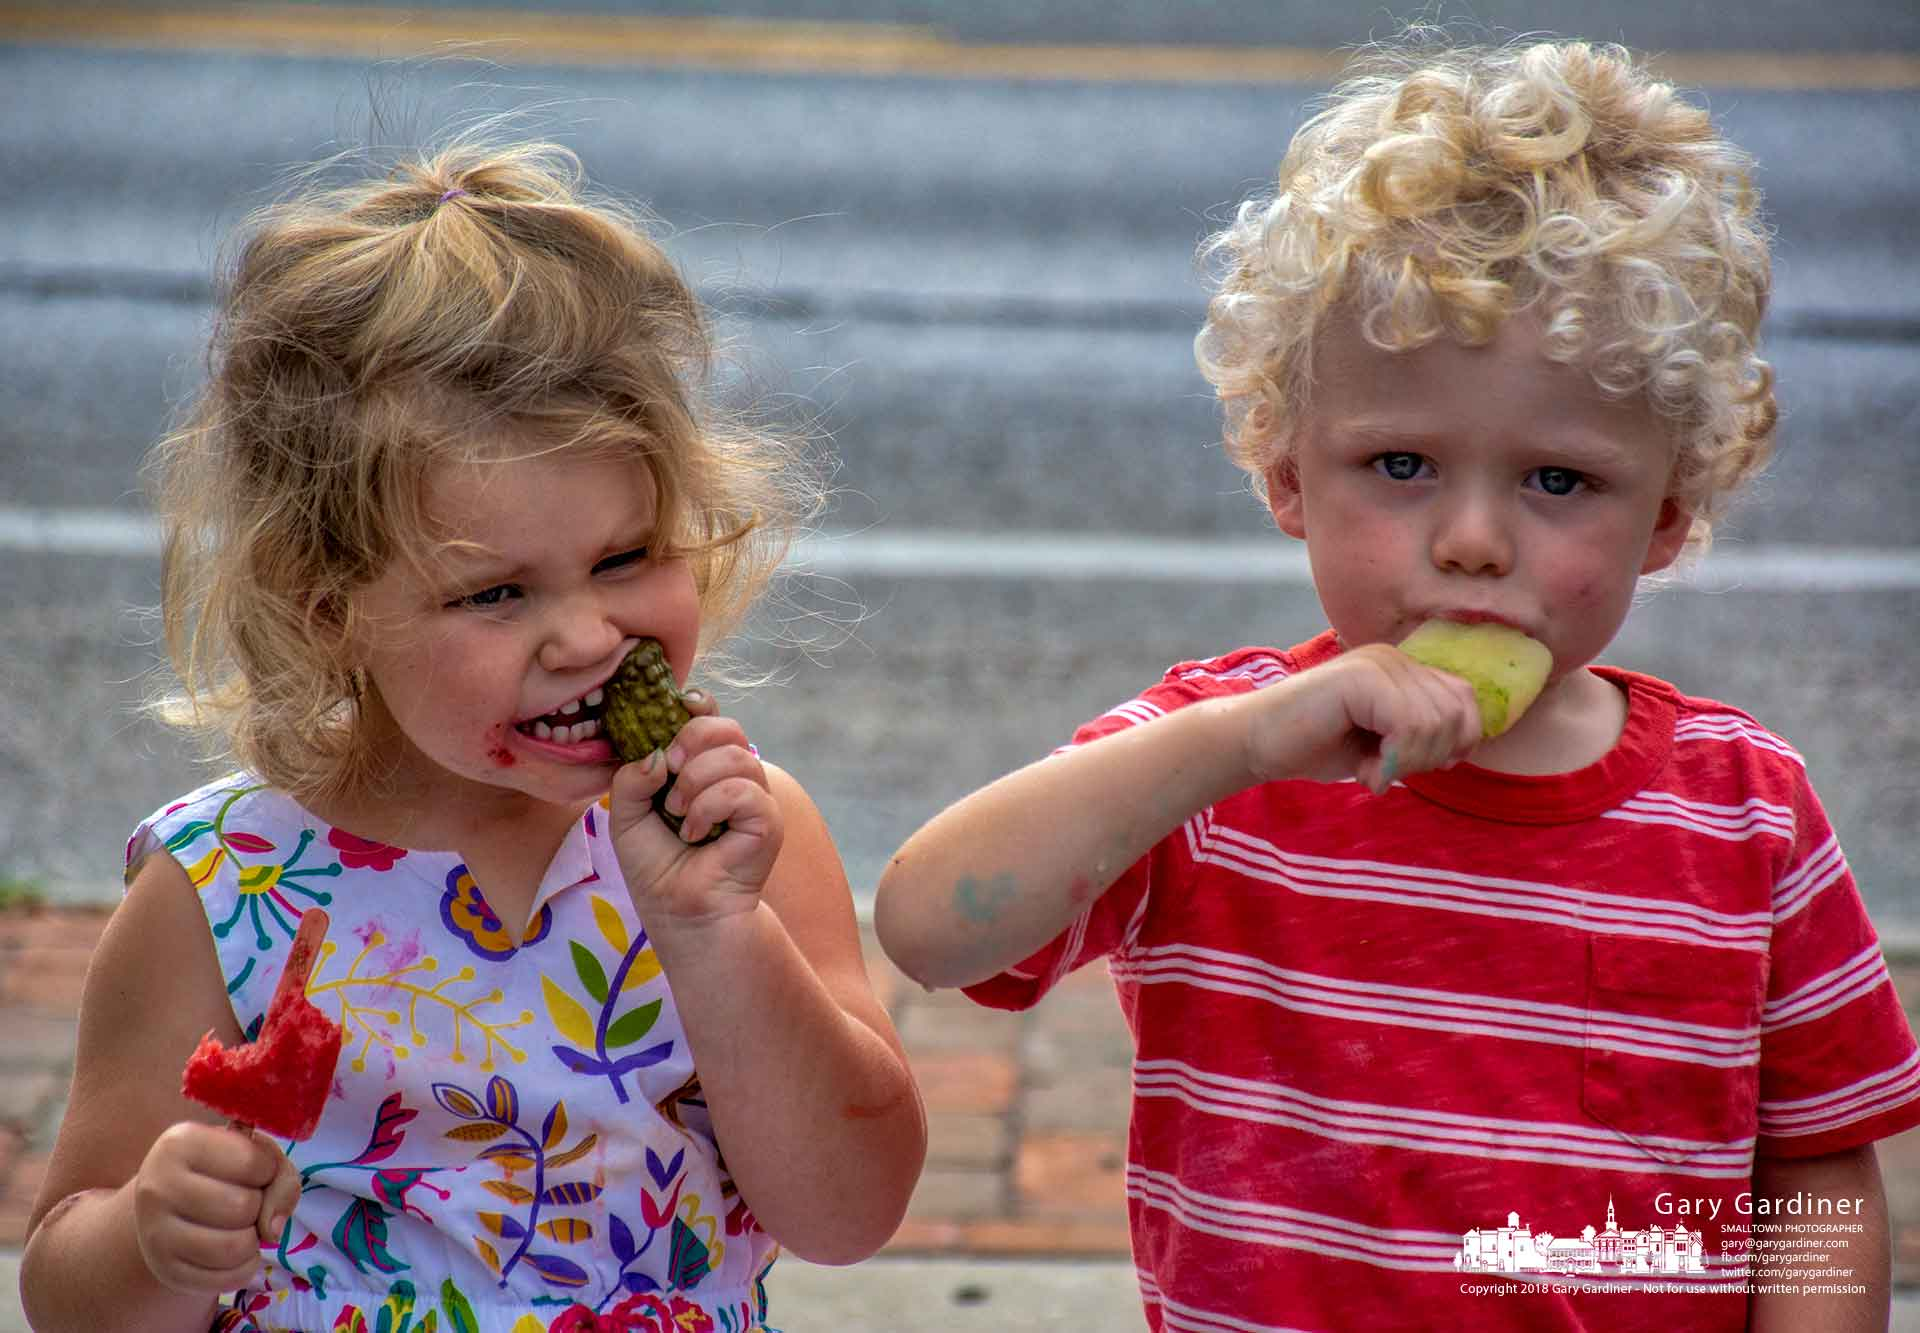 A young couple enjoys J-Pop popsicles as one of them adds the taste of a dill pickle to the flavor mix after their parents shopped at the Upton Westerville Farmers Market Wednesday. My Final Photo for Sept. 5, 2018.